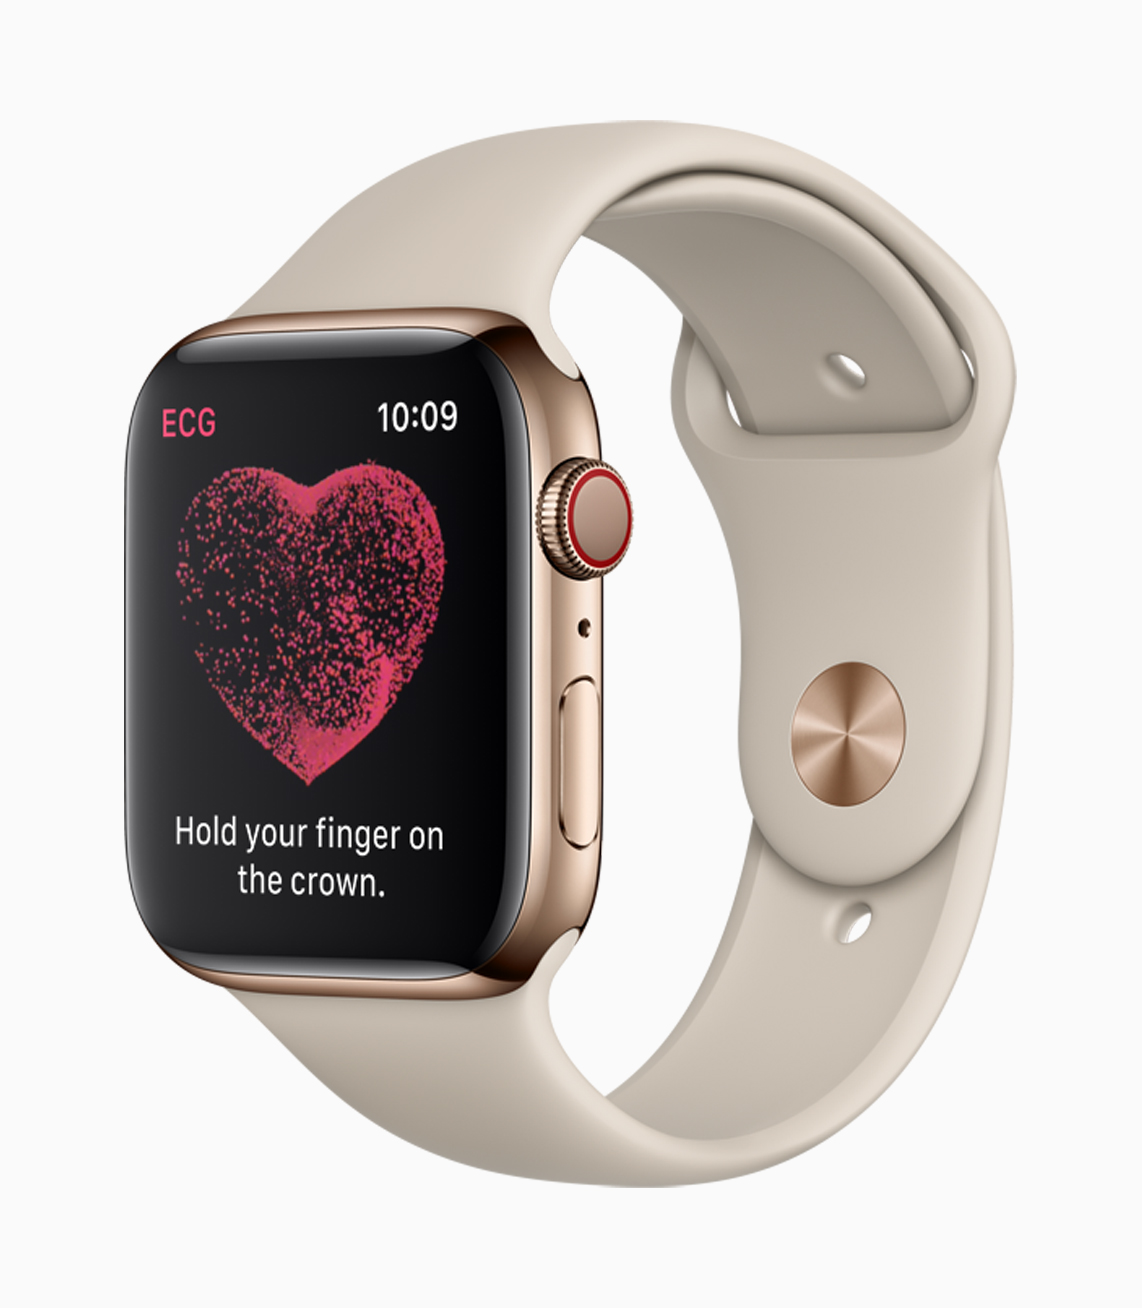 Health Canada Approves Apple Watch ECG App, Hinting Launch Imminent